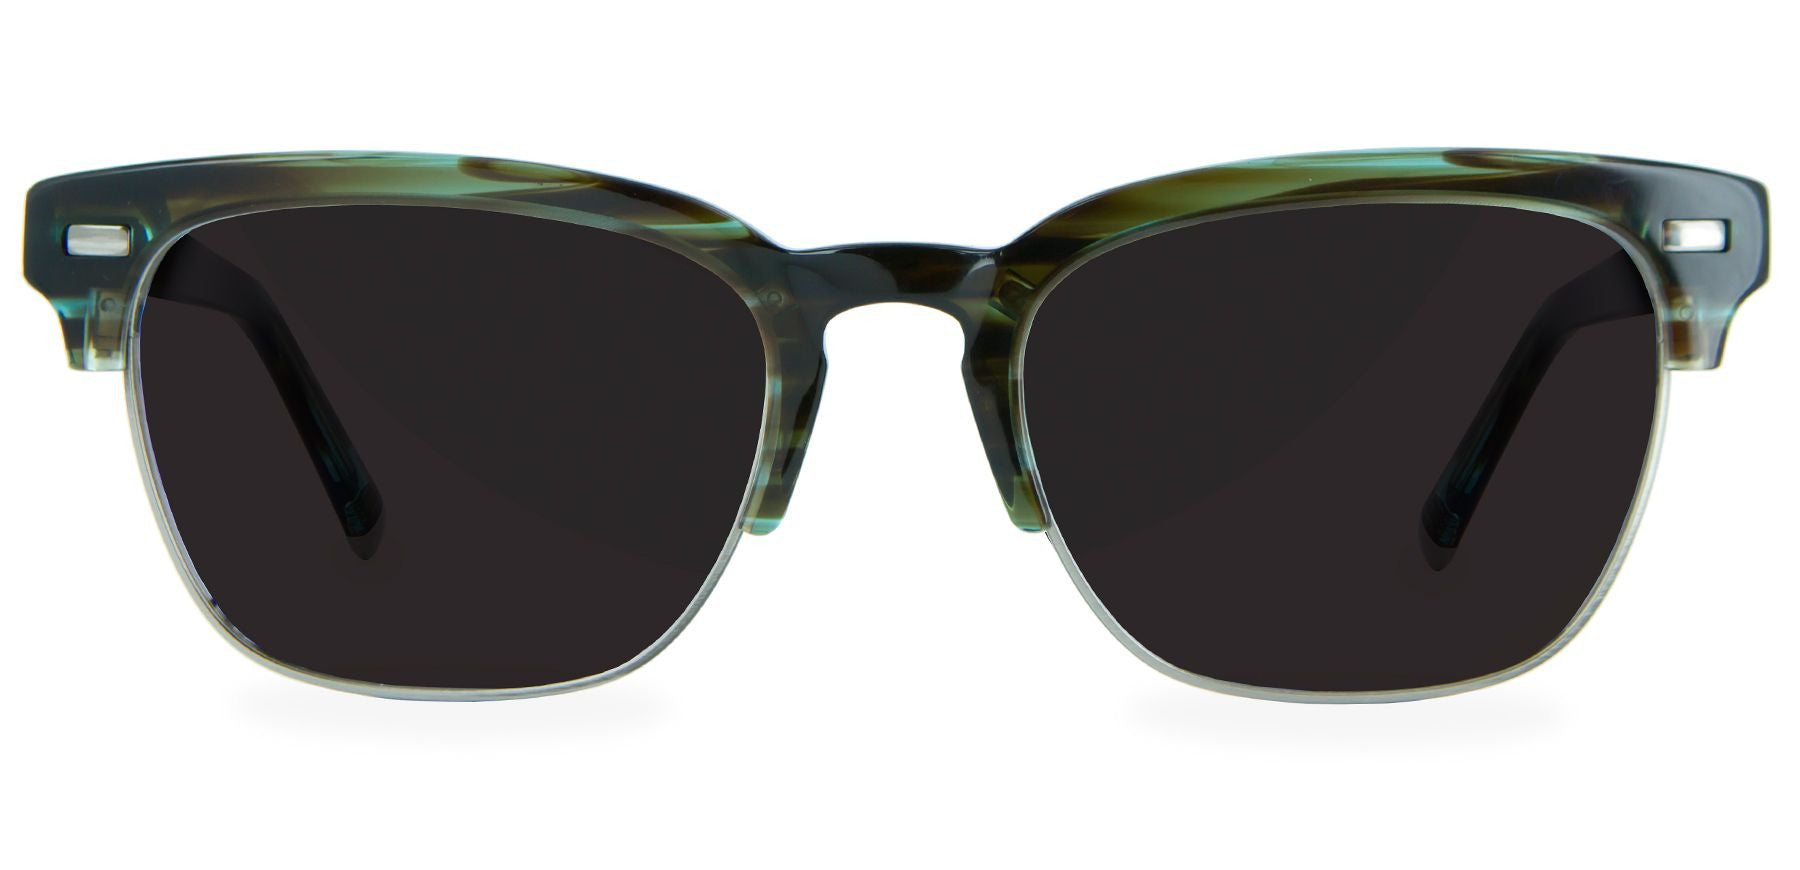 Blue Havana with Neutral Grey Lenses